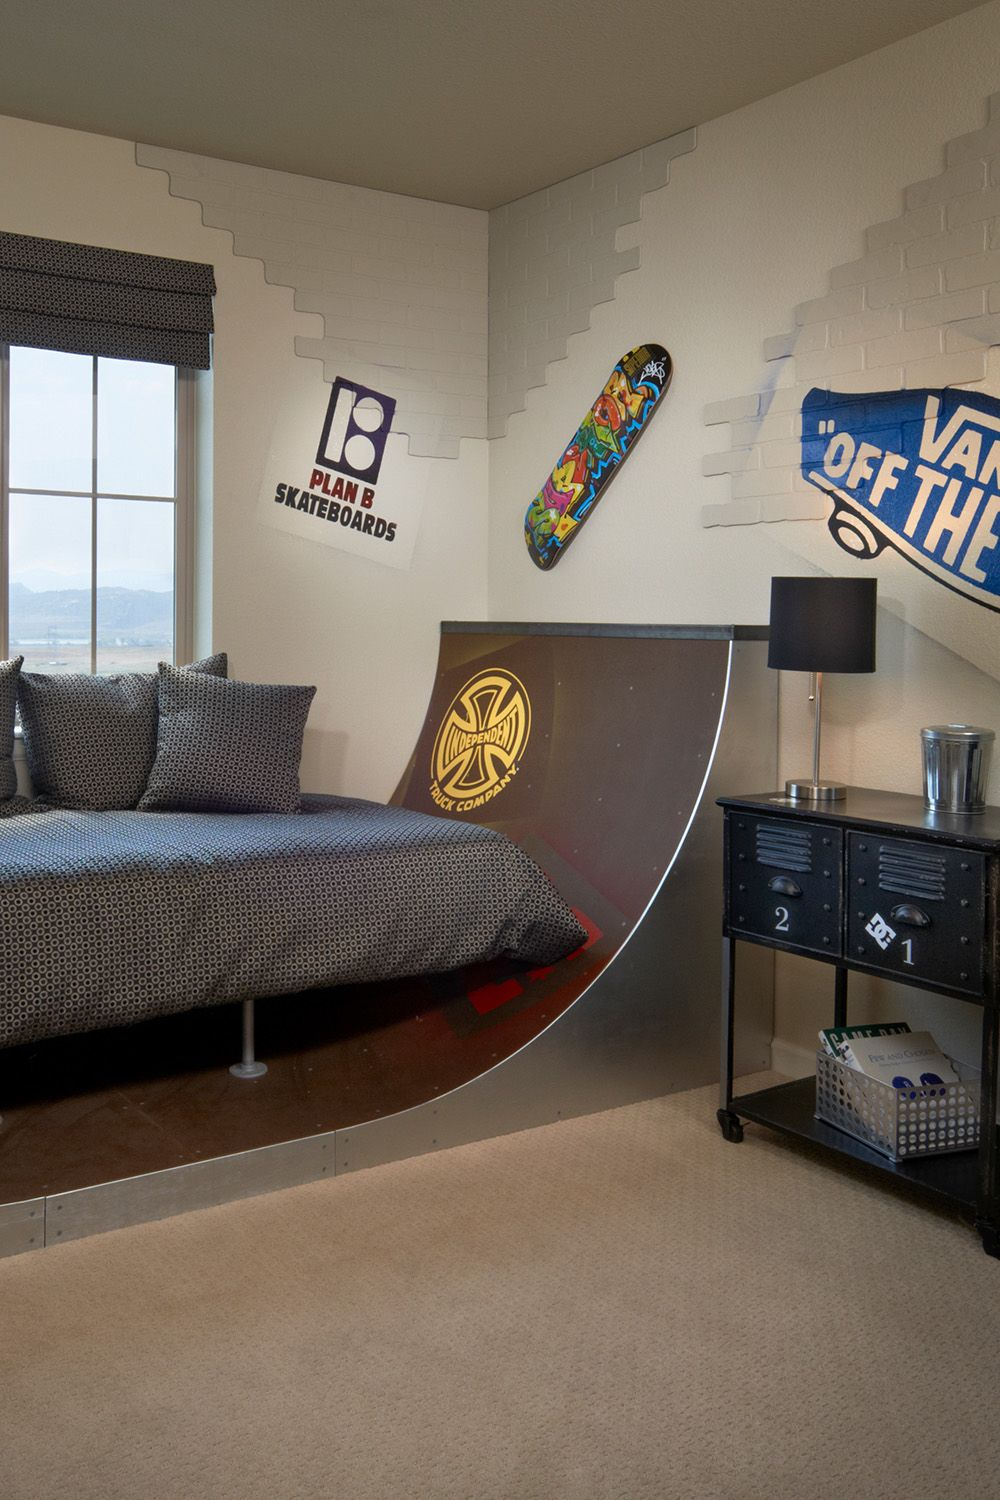 Skate Room For The Kids Skate Ramp Bed Painted Faux Brick Paneling And Skateboard Decks Make A For A Coo Skateboard Bedroom Skateboard Room Faux Brick Panels